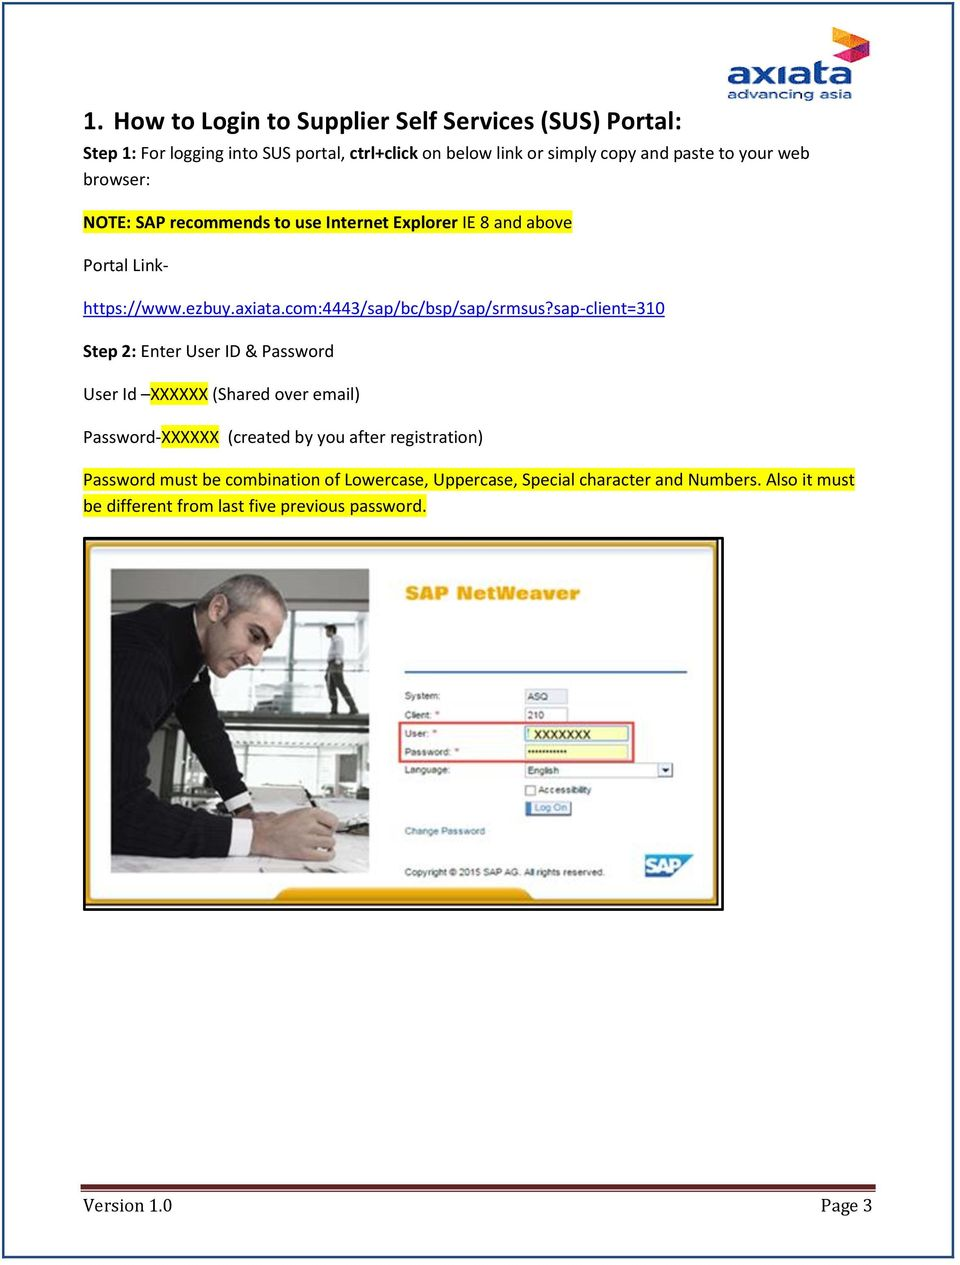 sap-client=310 Step 2: Enter User ID & Password User Id XXXXXX (Shared over email) Password-XXXXXX (created by you after registration) Password